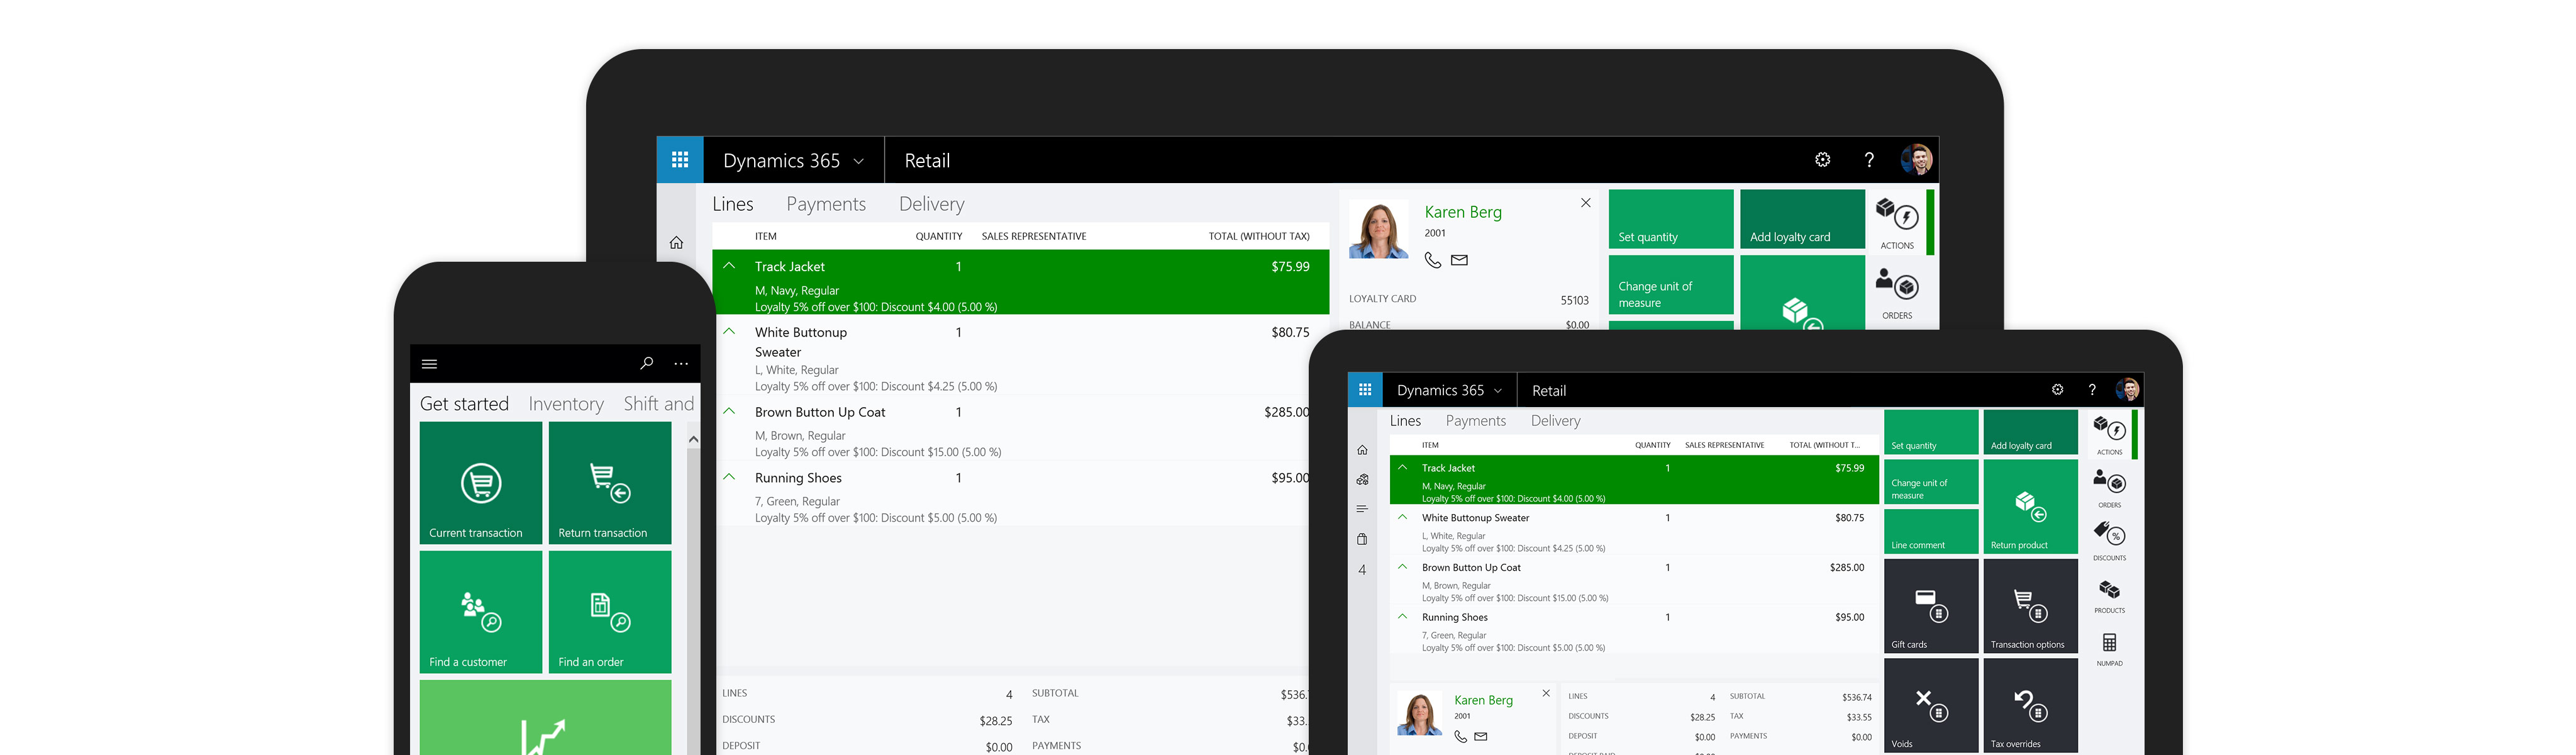 Dynamics 365 For Retail Qbs Group